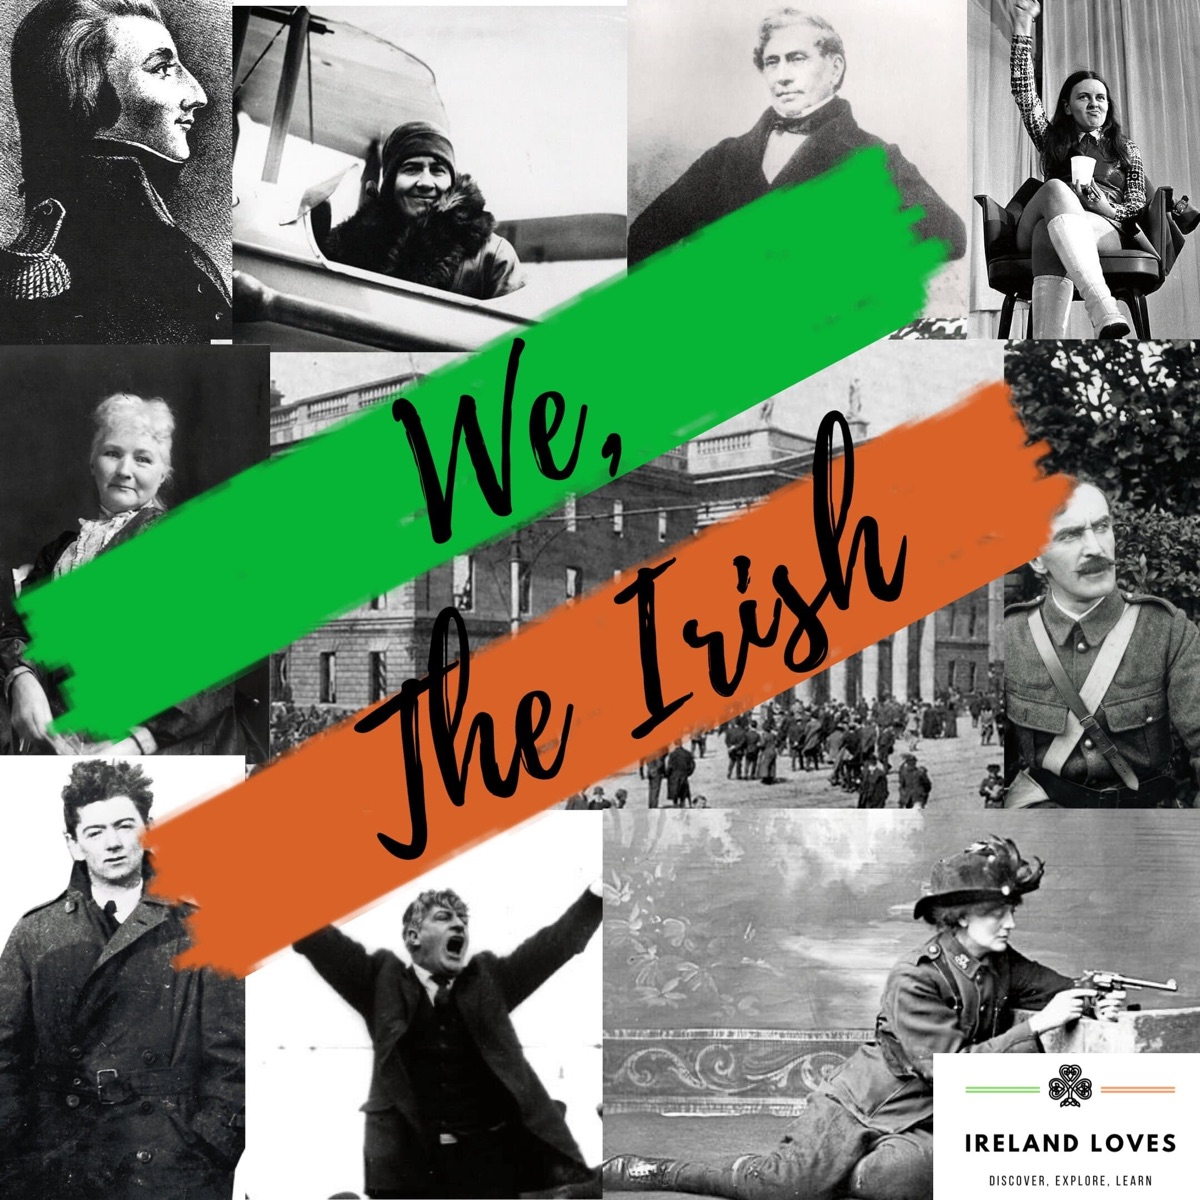 We, The Irish